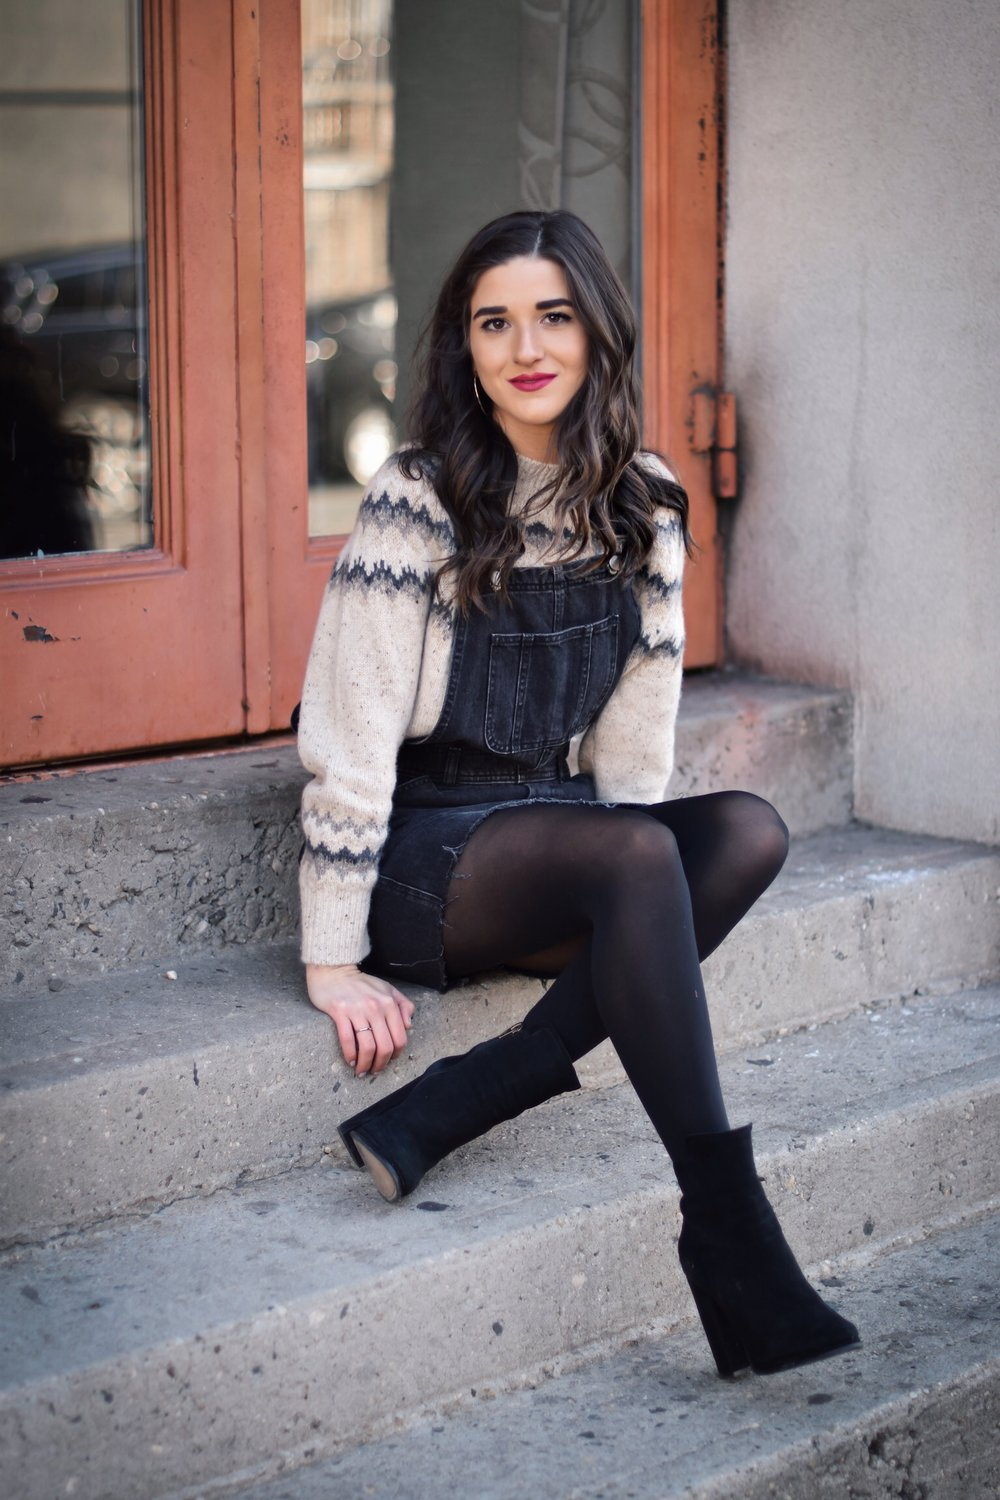 My Biggest Fashion And Beauty Mistakes Jean Overall Dress Over Cashmere Sweater Esther Santer Fashion Blog NYC Street Style Blogger Outfit OOTD Trendy Shopping Tights Cozy Winter What To Wear Cold Wavy Hair Girl Women Bold Lip Vince Heel Booties Denim.jpg